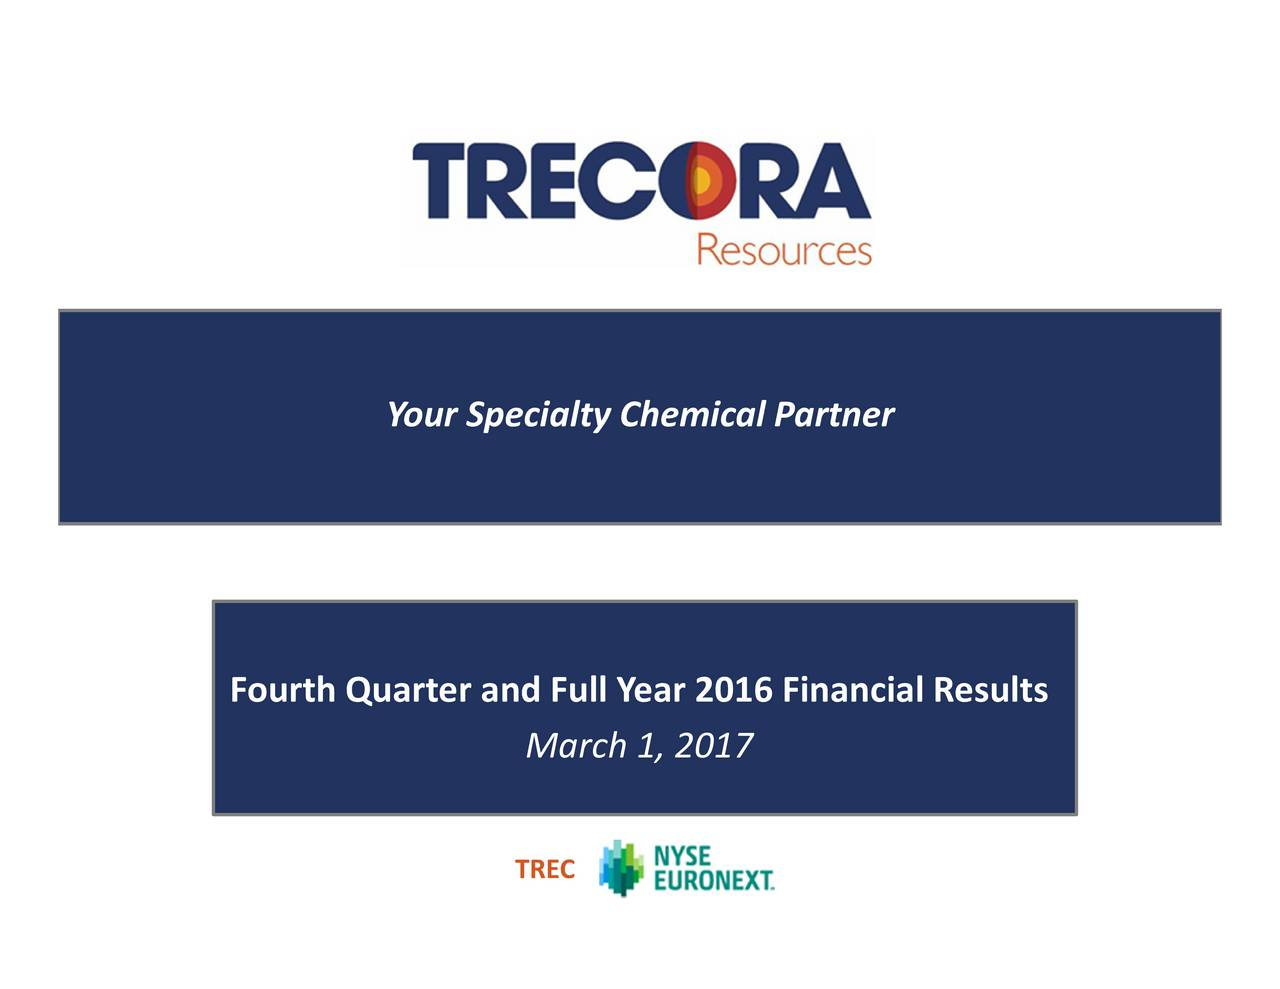 TREC Your Specialty Chemical Partnere Fourth Quarter and Full Year 2016 Financial Results